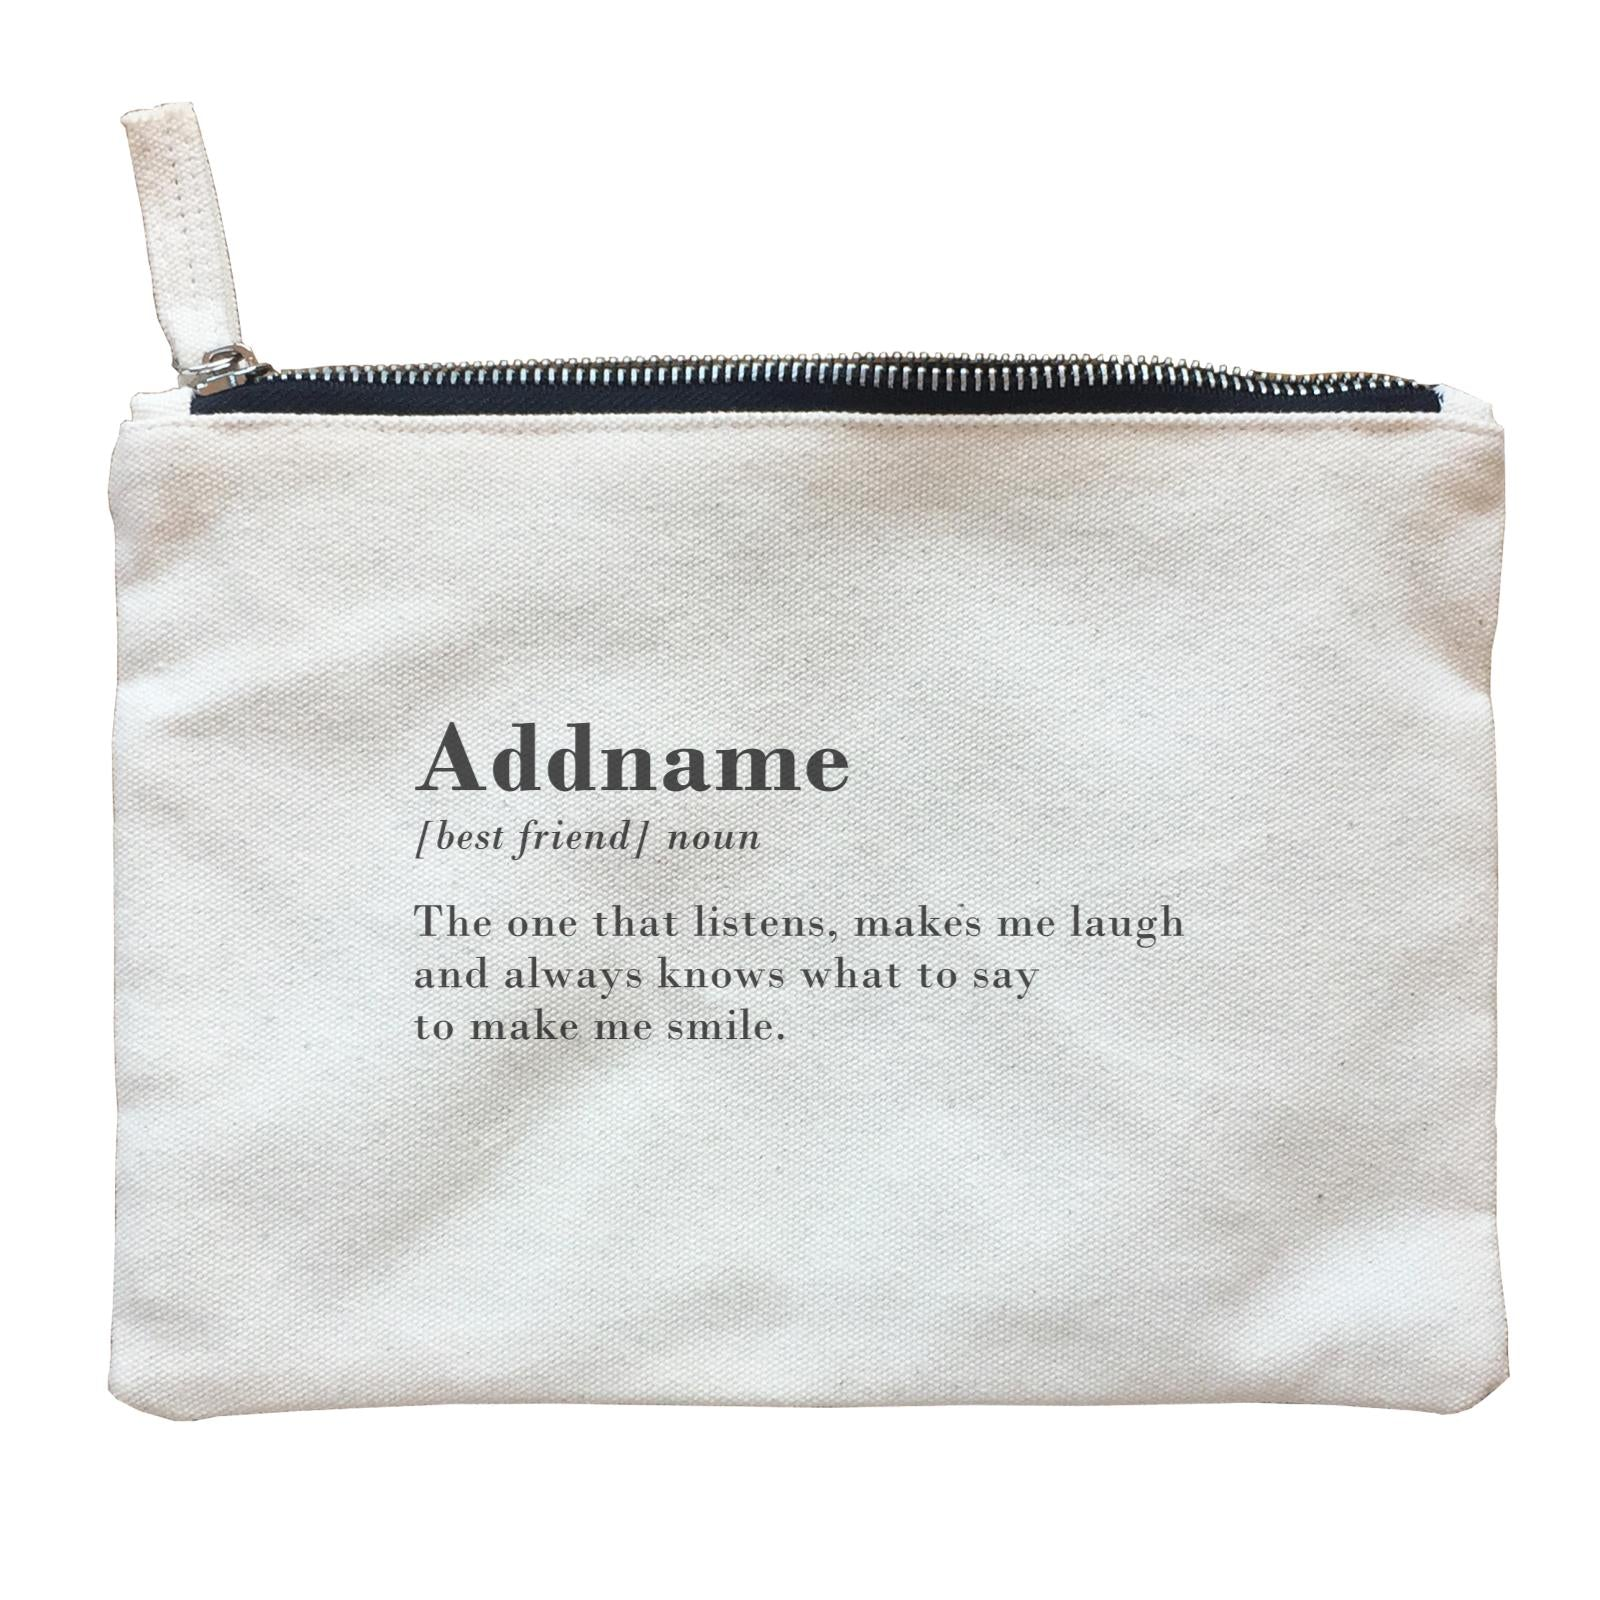 Best Friends Quotes Addname Best Friend Noun The One That Listens Make Me Laugh Zipper Pouch